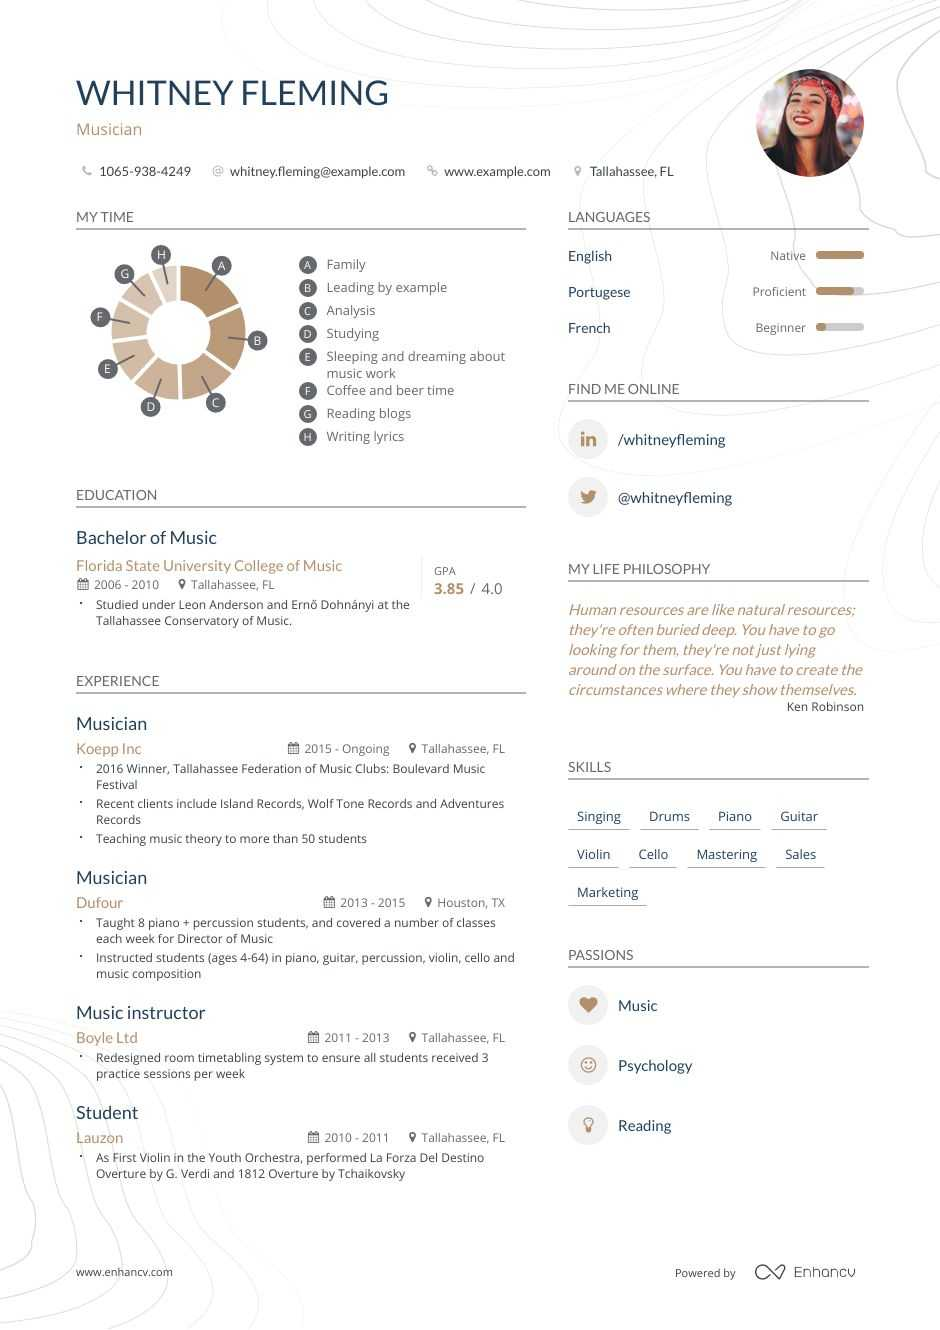 Musician Resume Example and guide for 2020